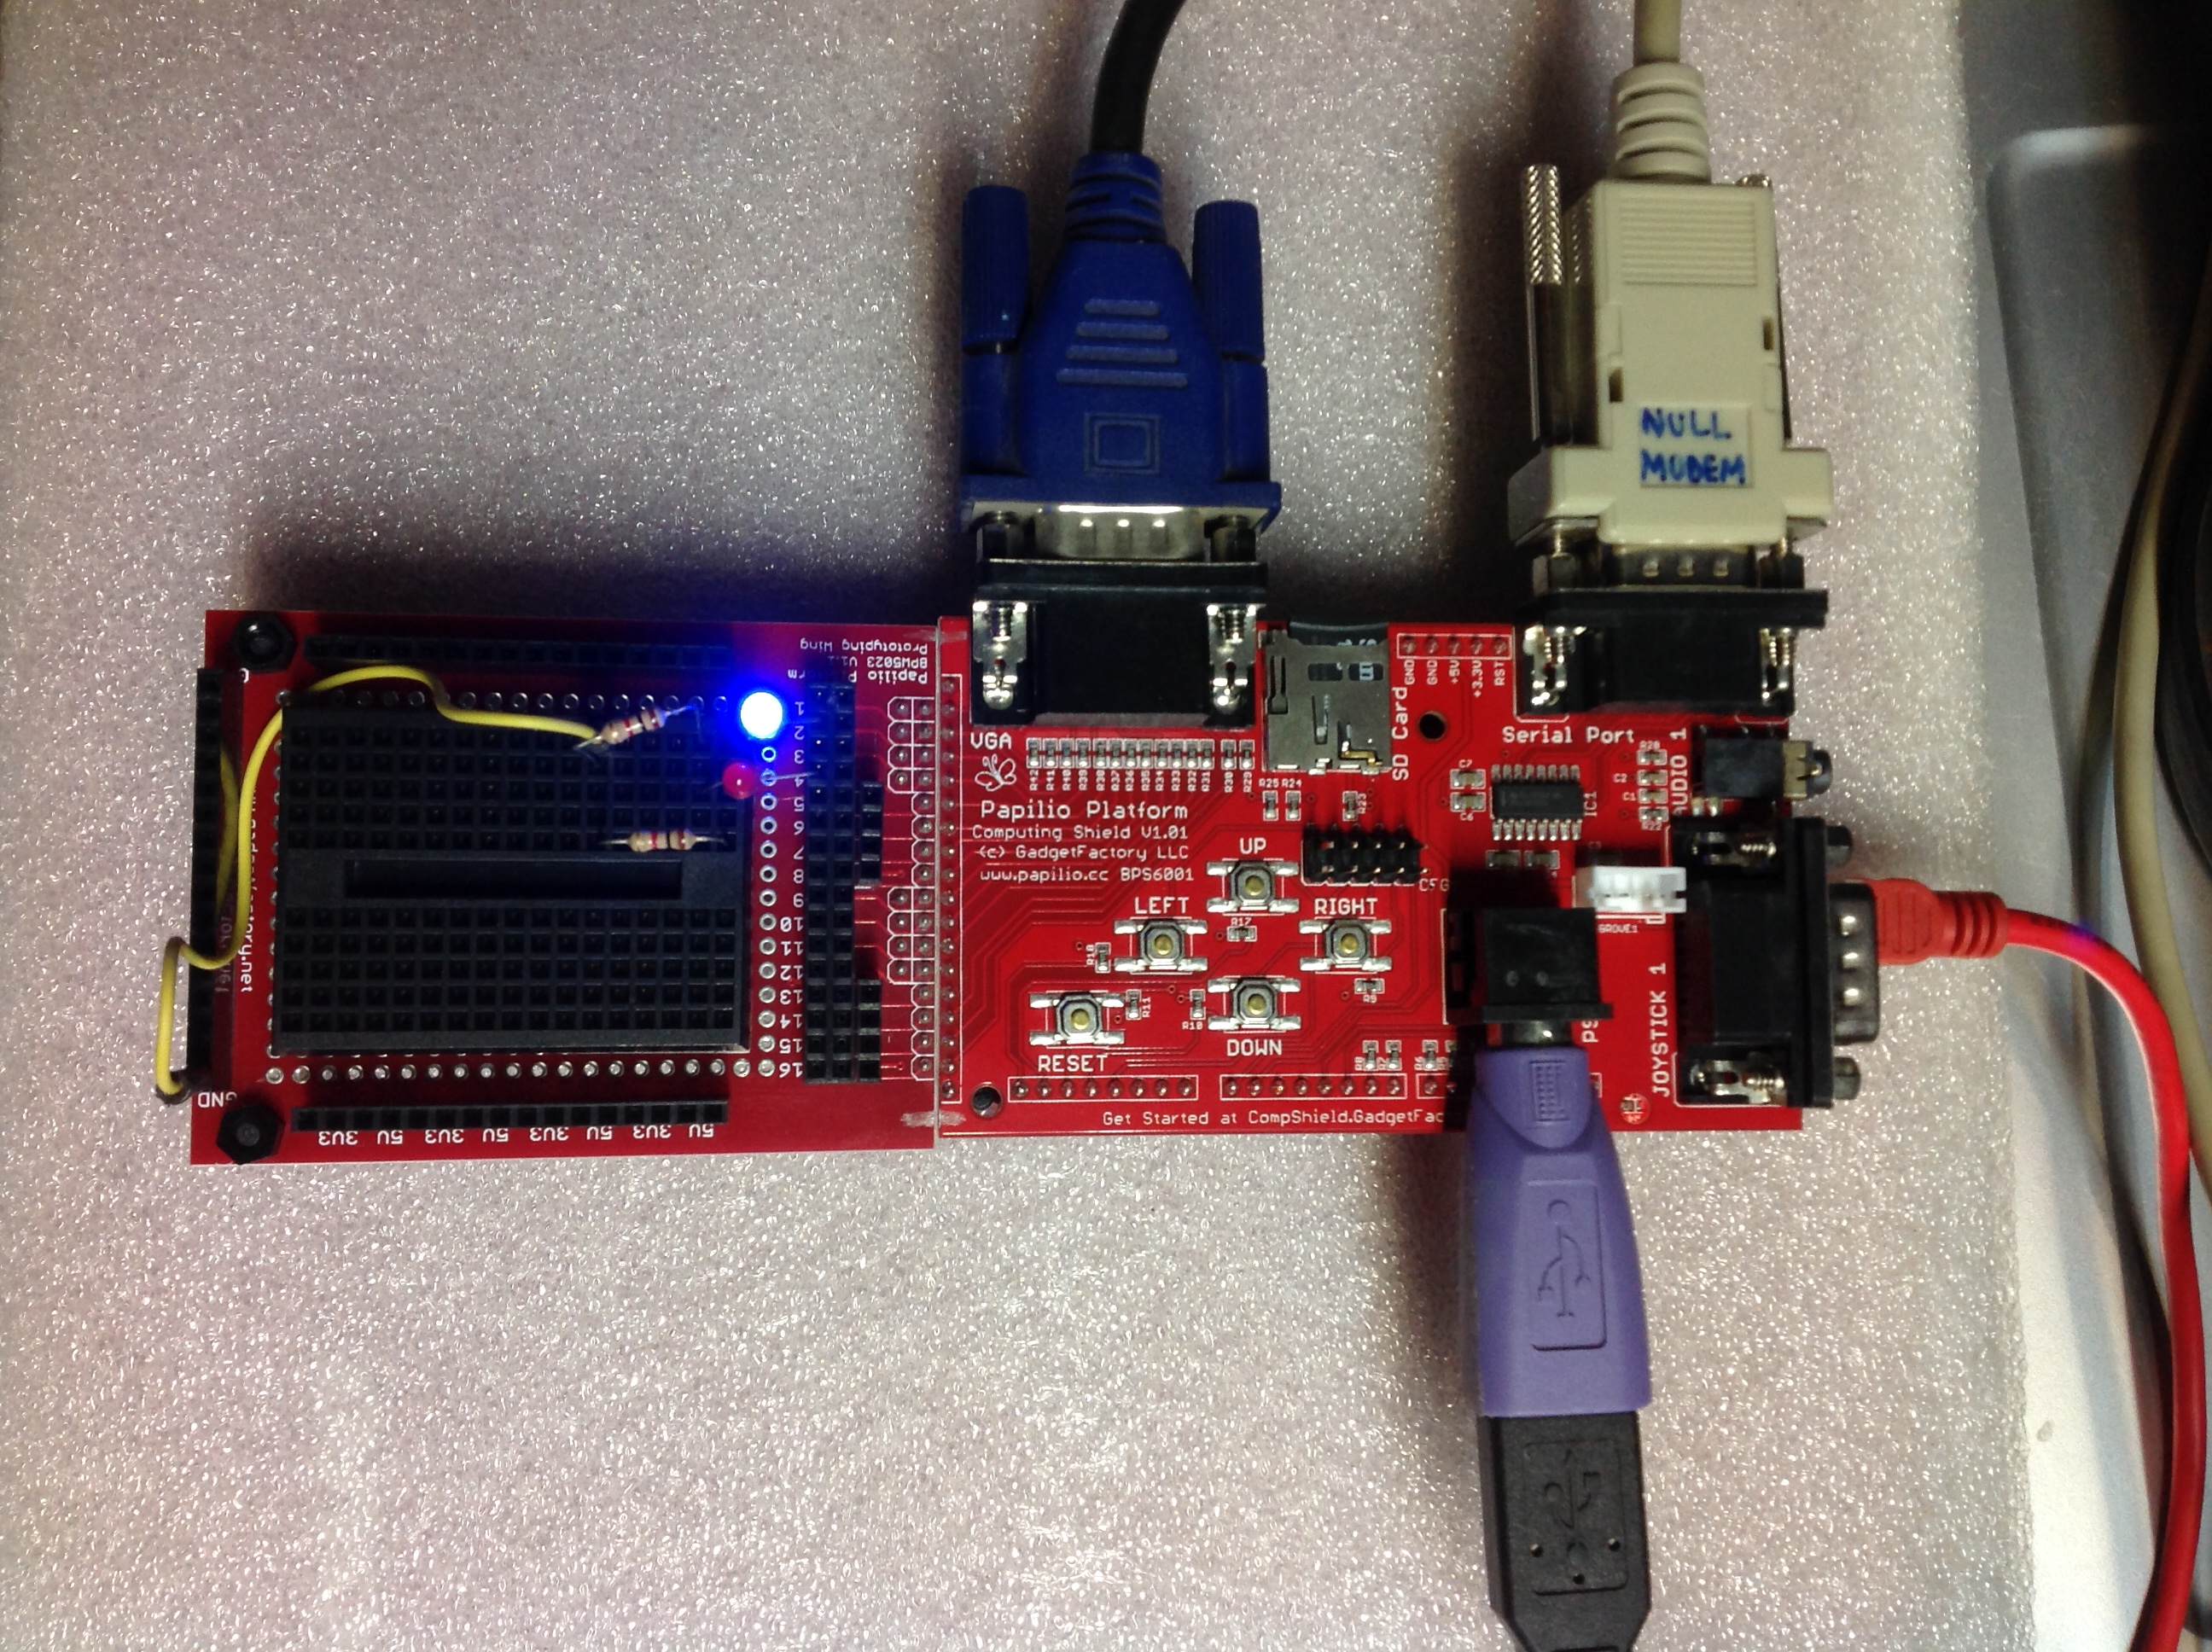 MULTICOMP Z80 CP/M migrated to the Papilio Duo Platform